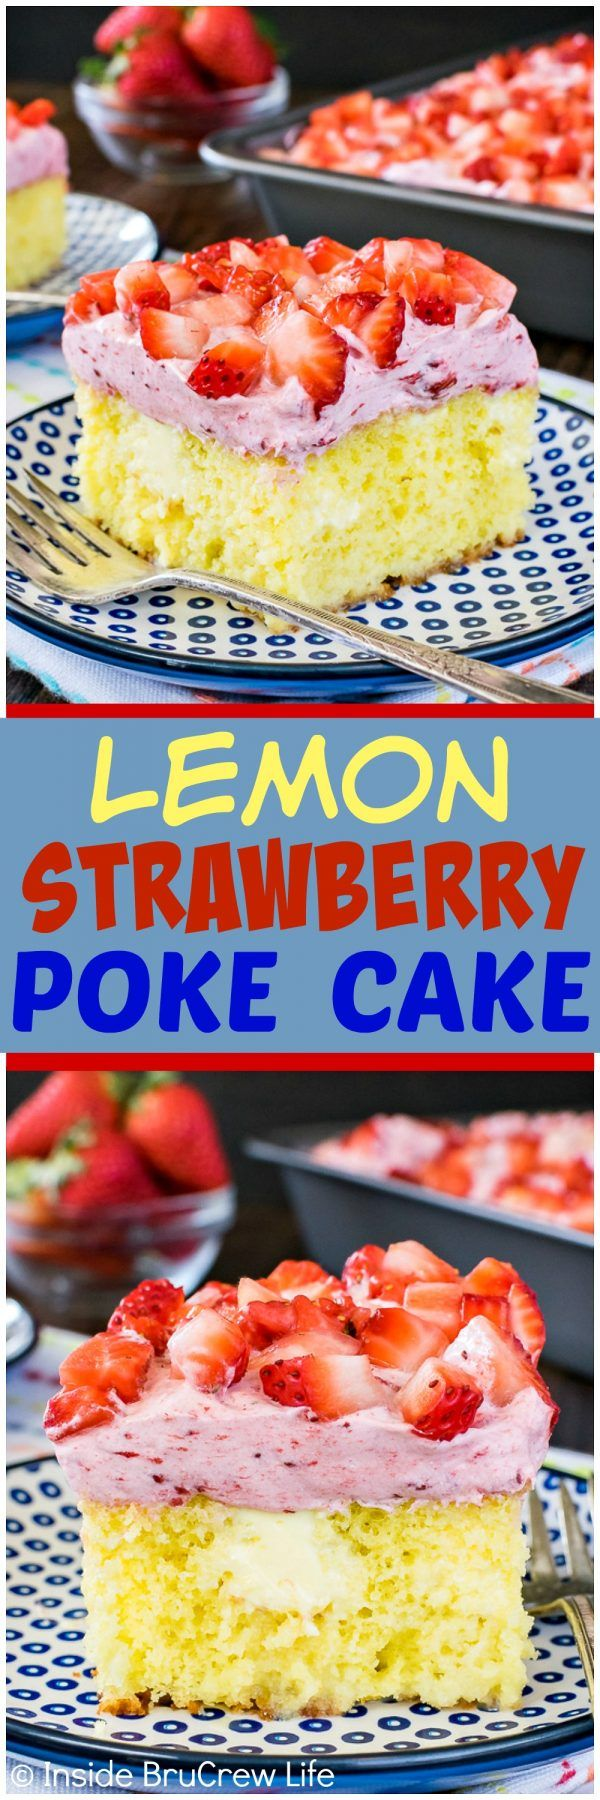 Lemon Strawberry Poke Cake - lemon frosting, strawberry mousse, and fresh berries make this easy cake a hit with everyone.  Great summer dessert recipe for picnics!